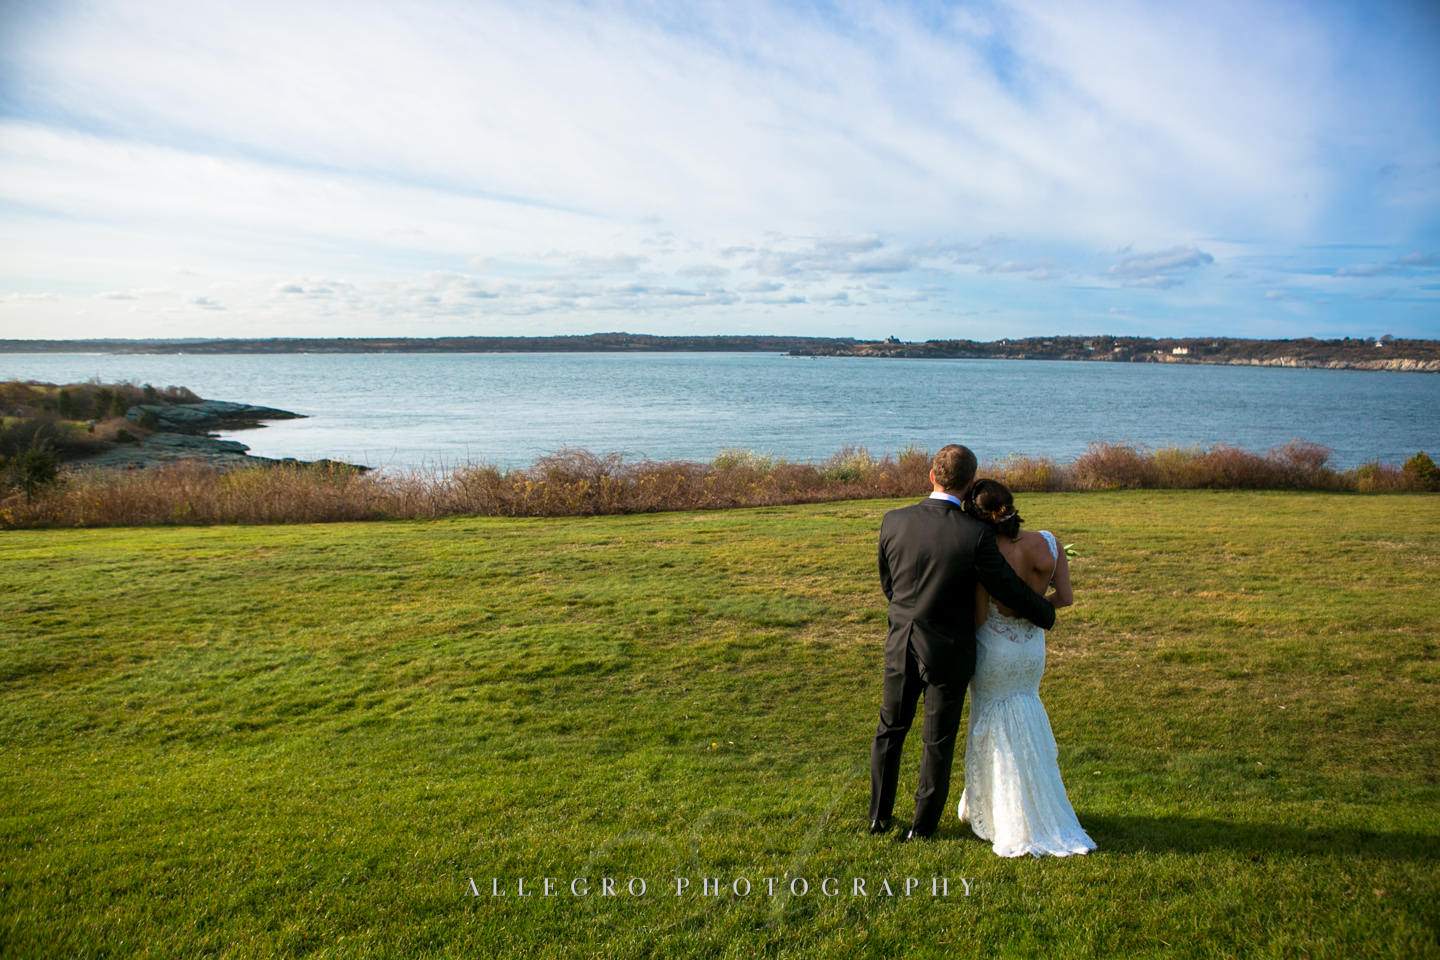 enjoying the ocean view at oceancliff newport experience -photo by Allegro Photography